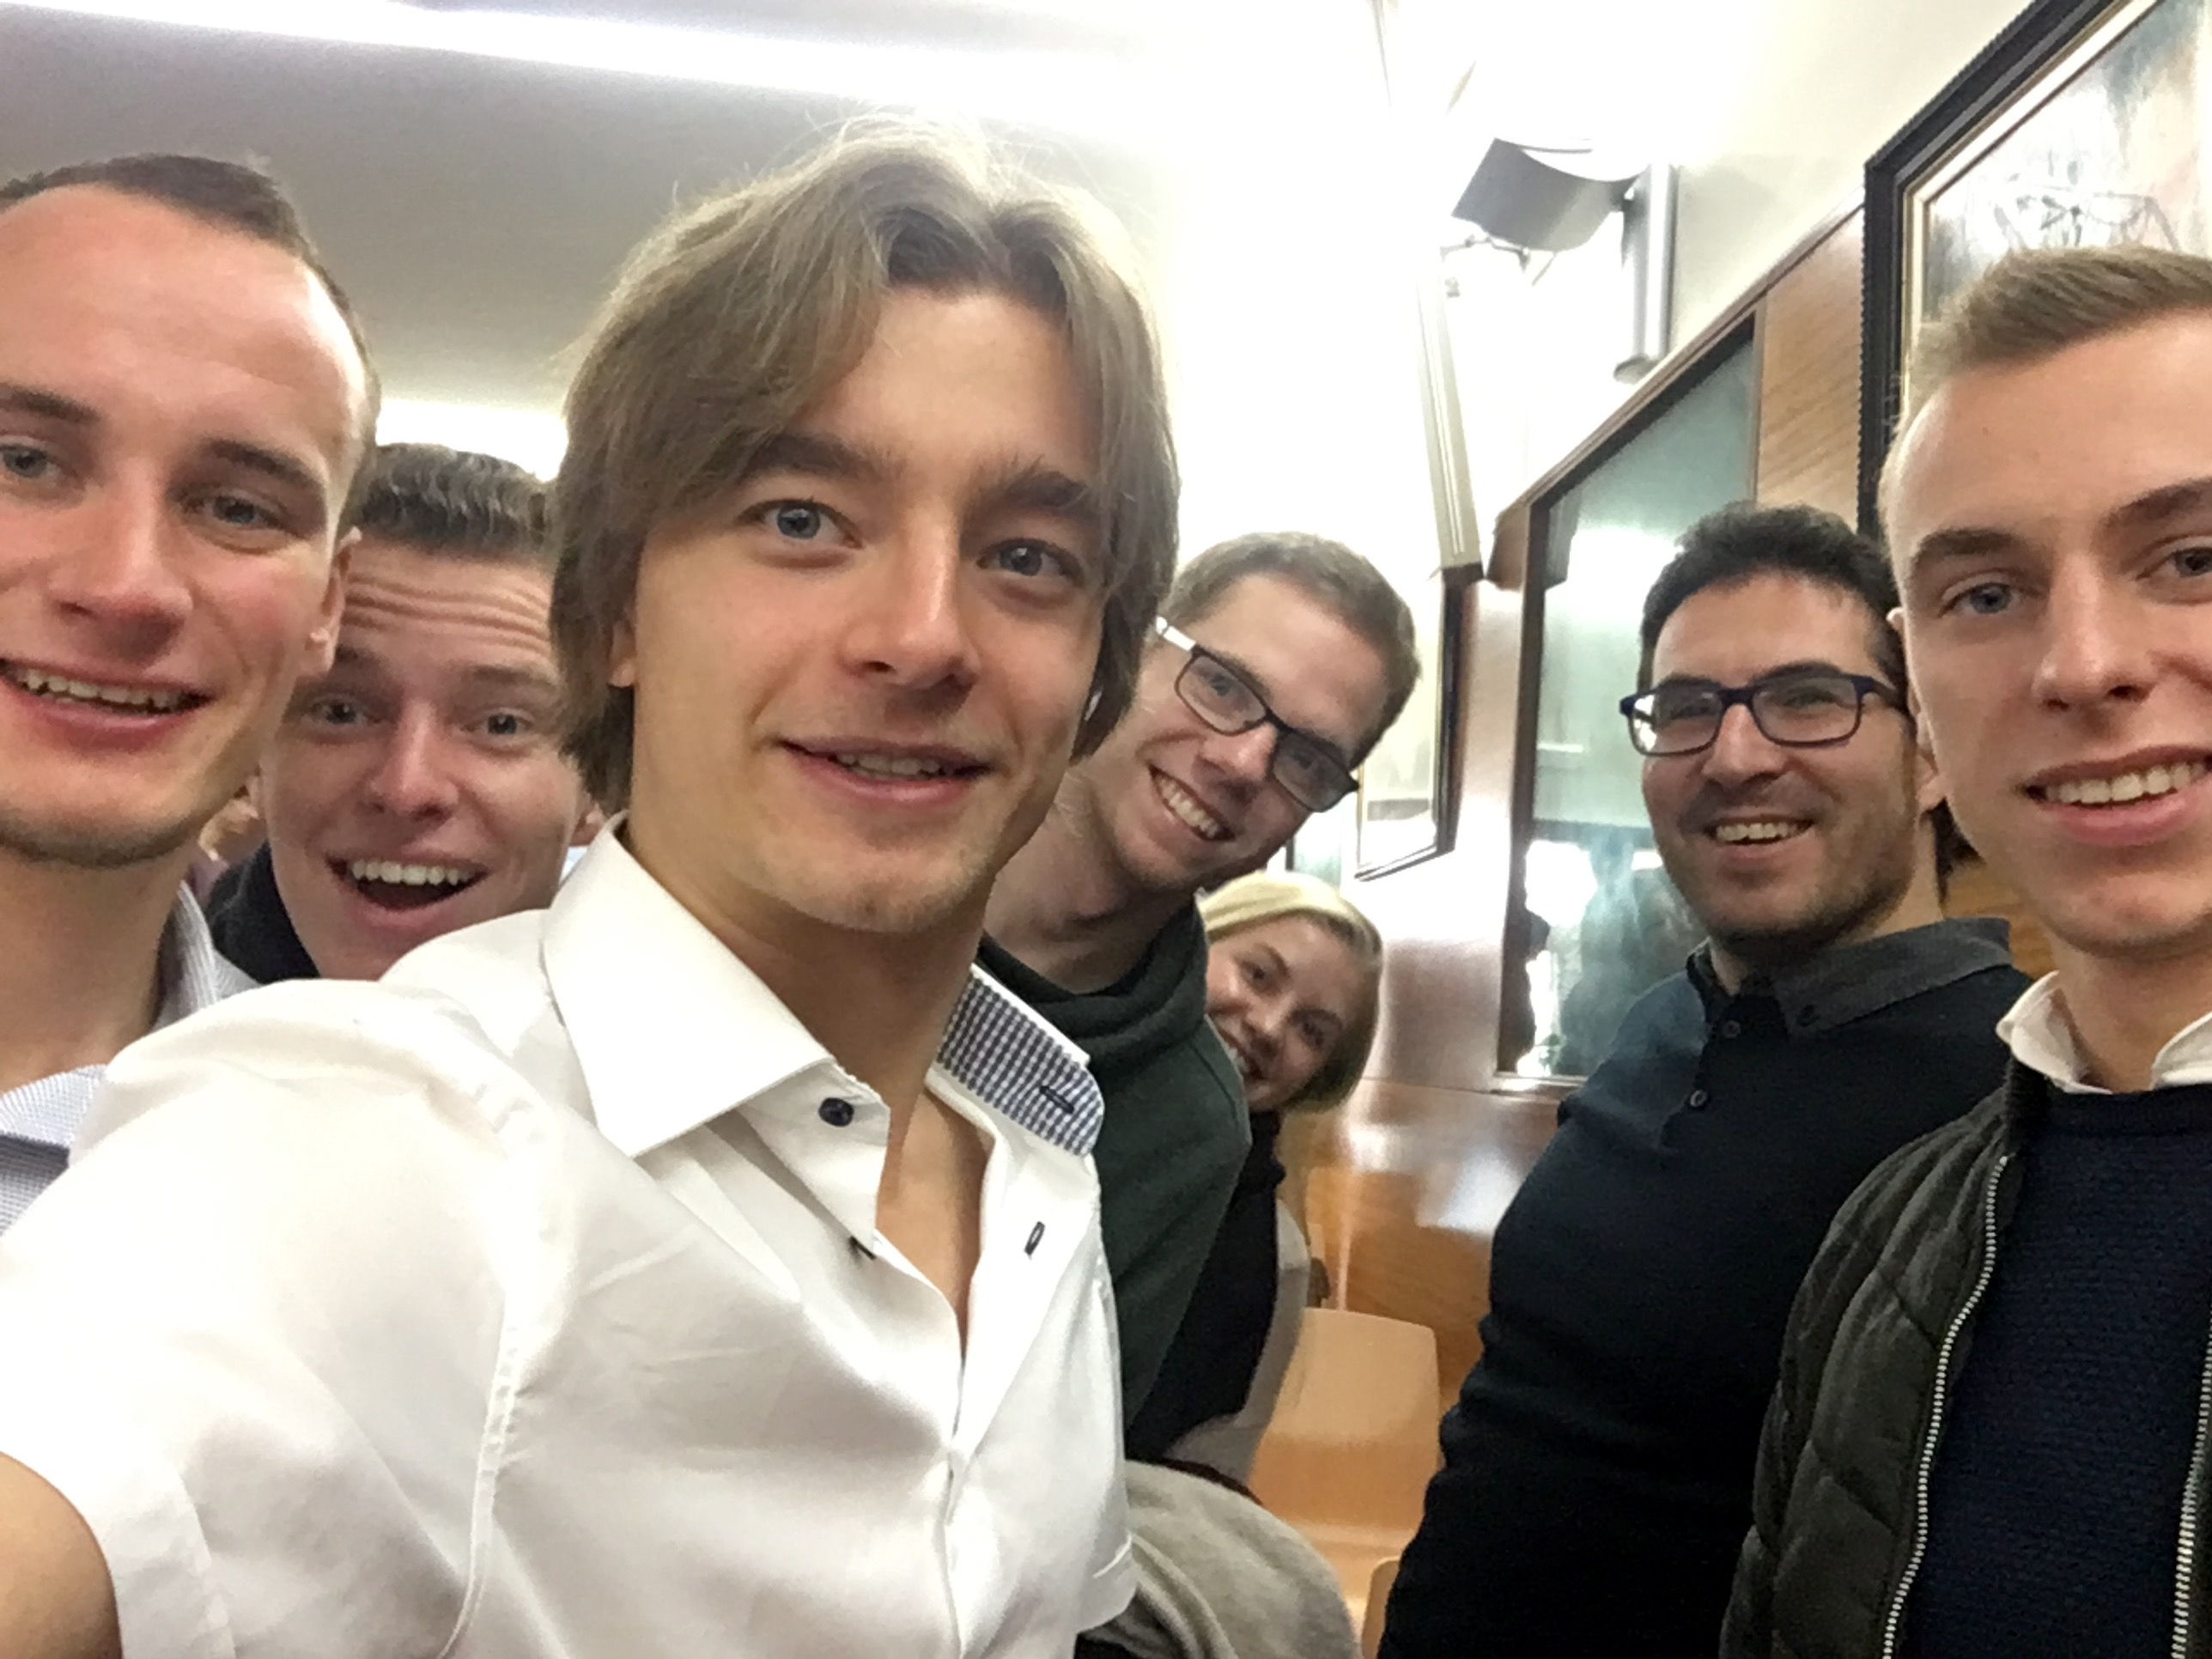 Selfie with the team after the final presentation